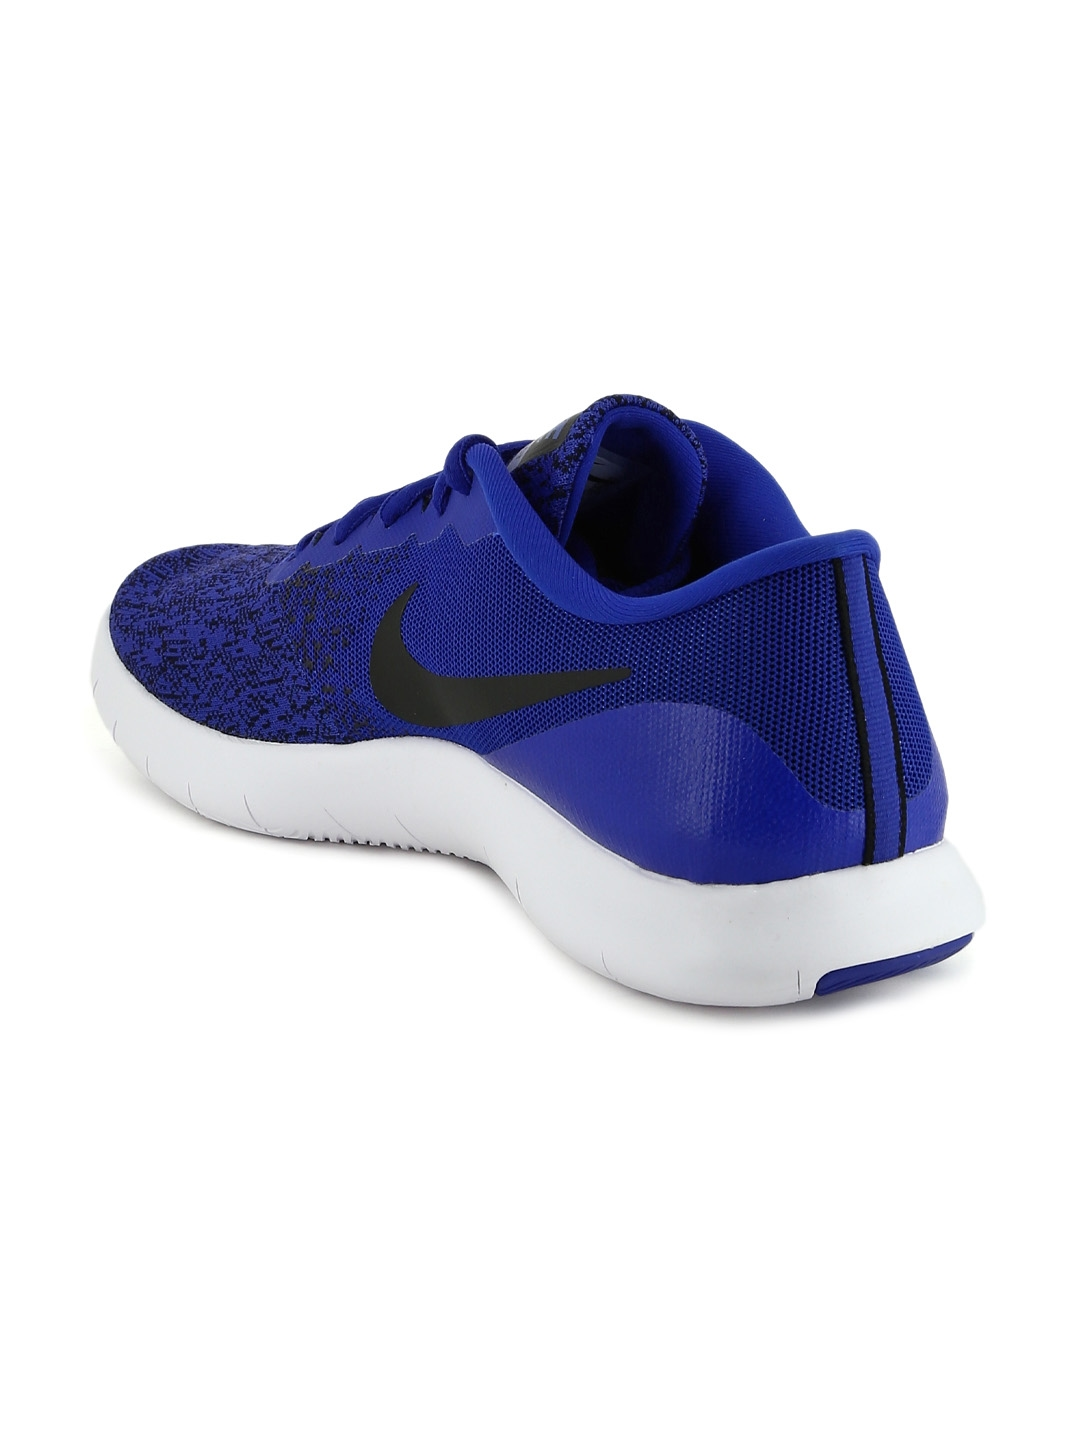 69d16a2cd554 Buy Nike Men Blue FLEX CONTACT Running Shoes - Sports Shoes for Men ...